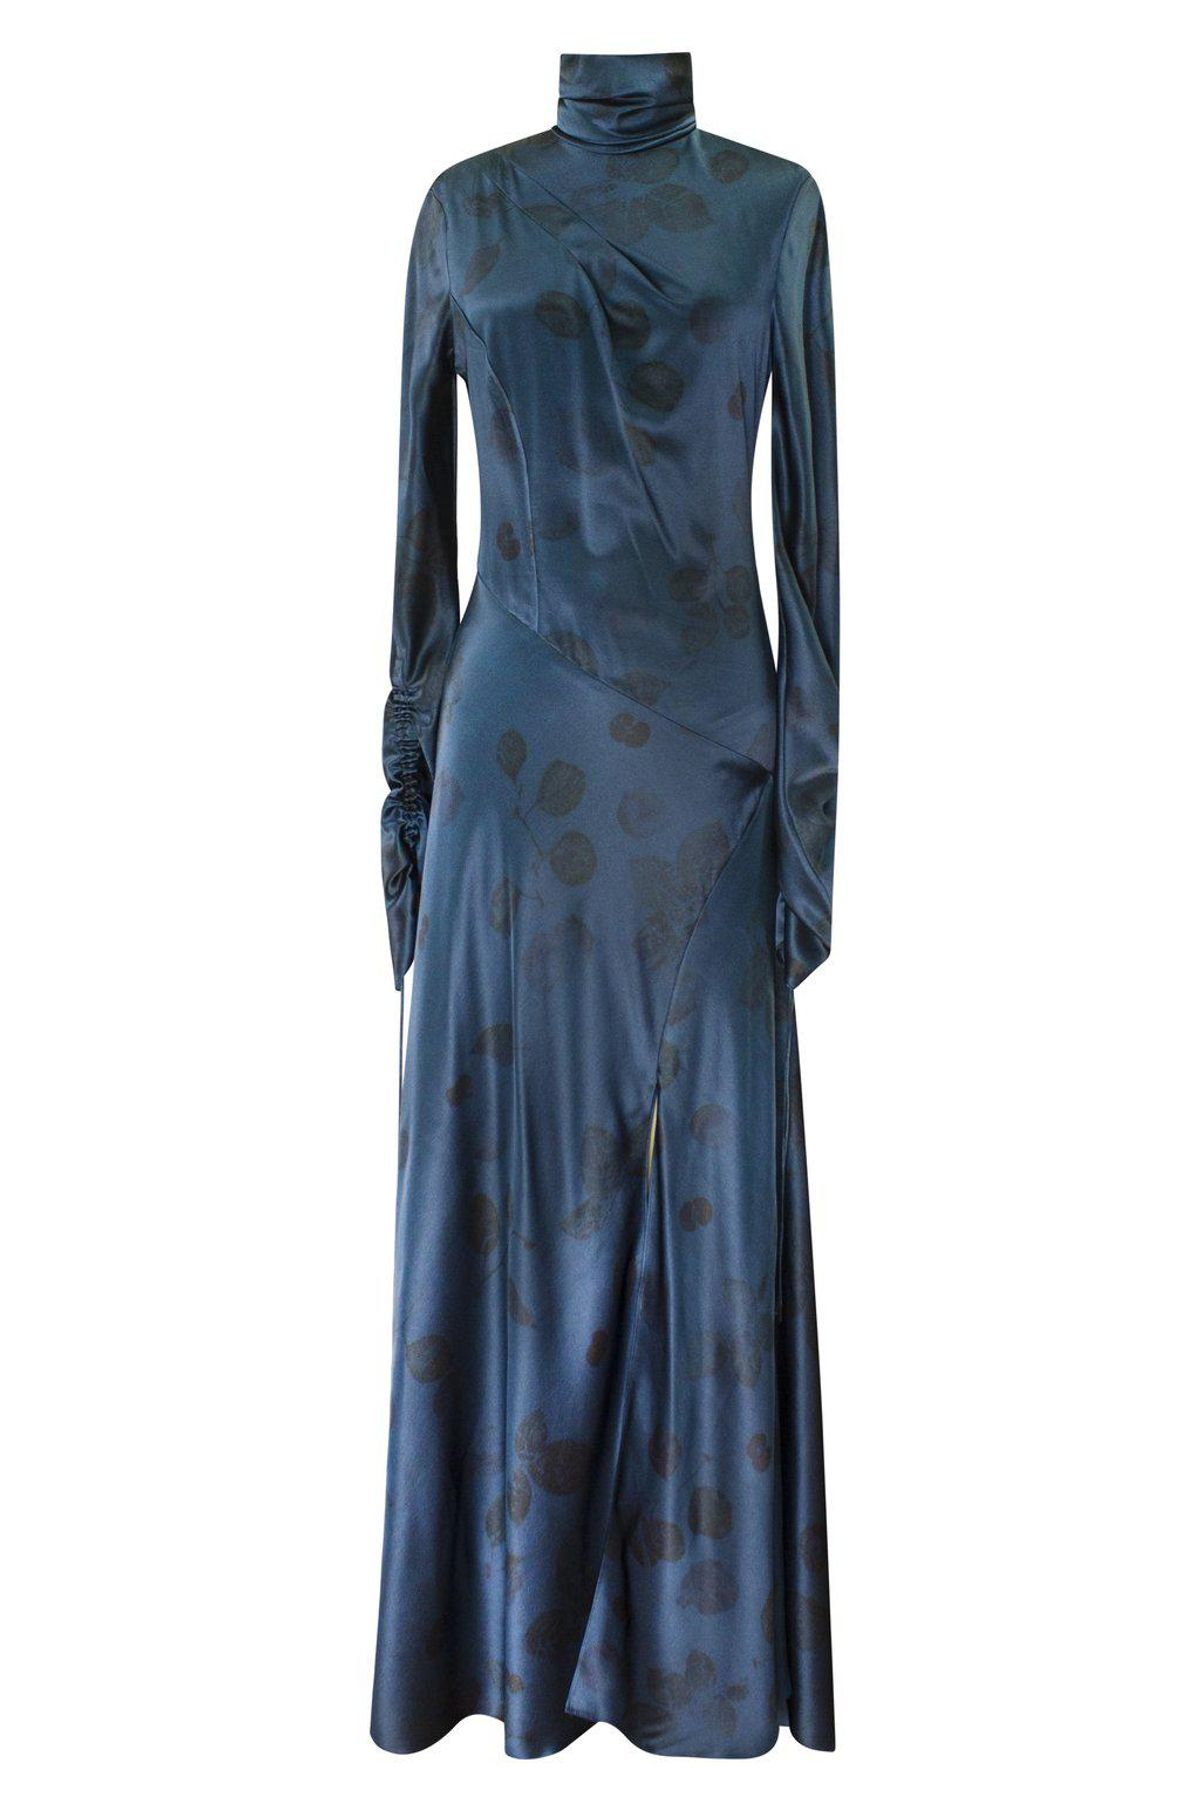 Oceano Floral Dyed Long Sleeve Dress